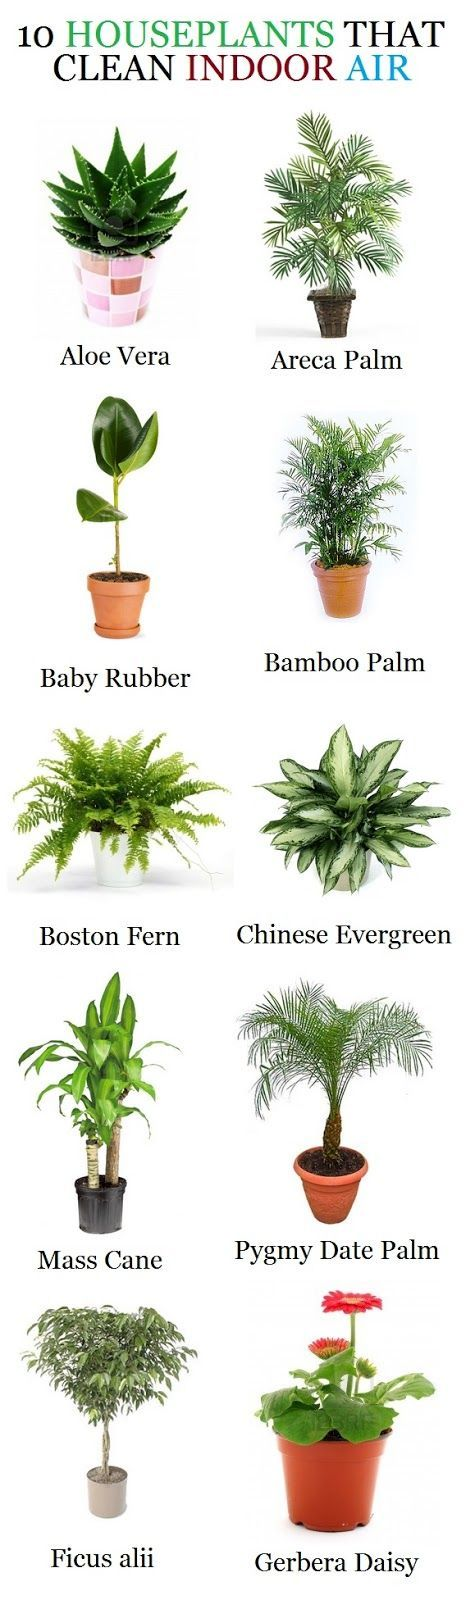 Houseplants that clean your indoor air! If only I didn't kill plants!